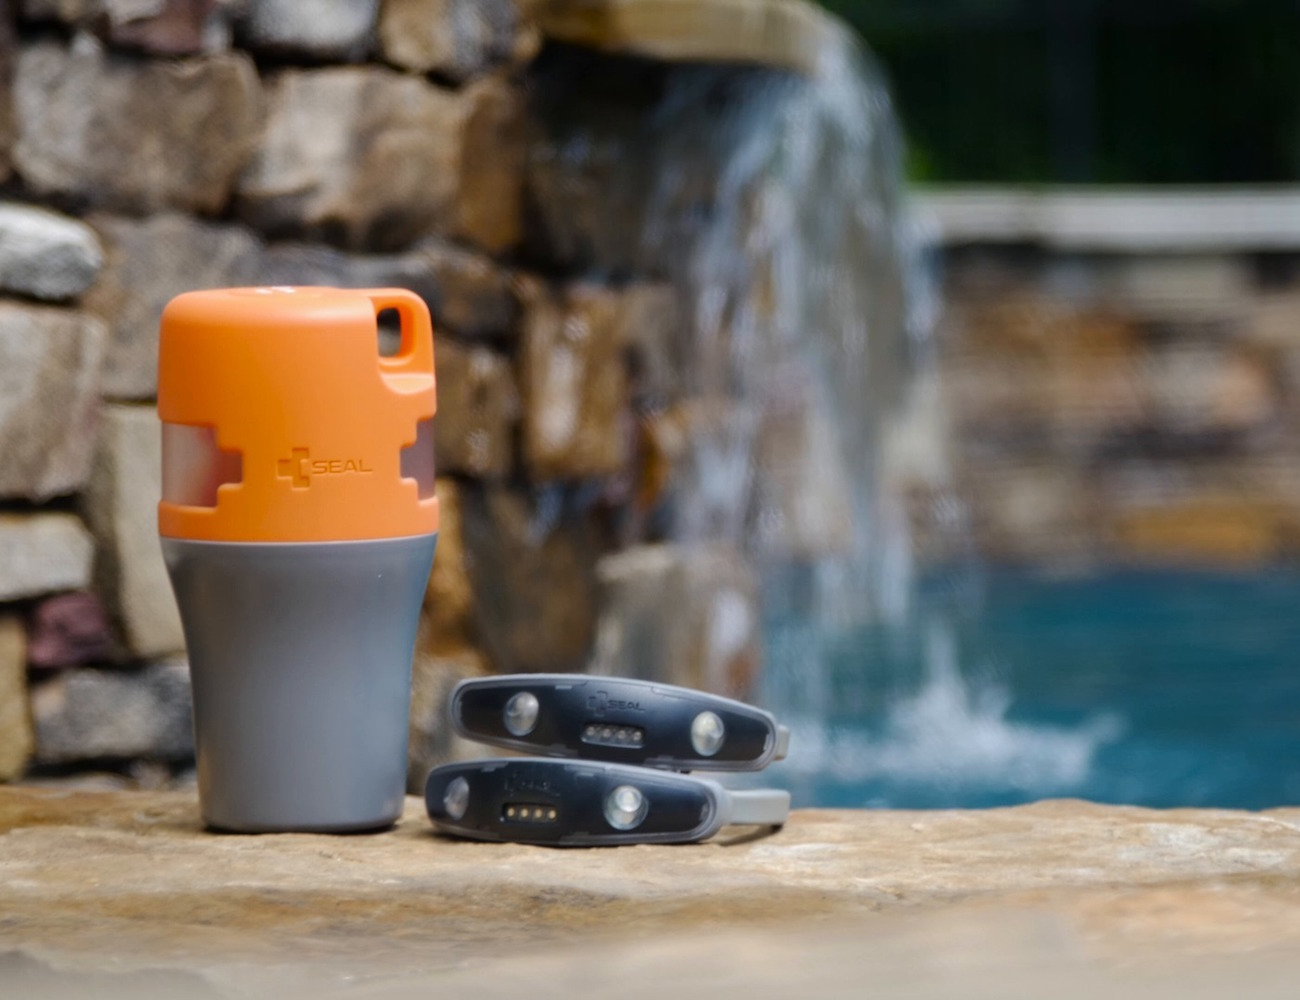 Swimsafe Swim Monitor System By Seal Gadget Flow